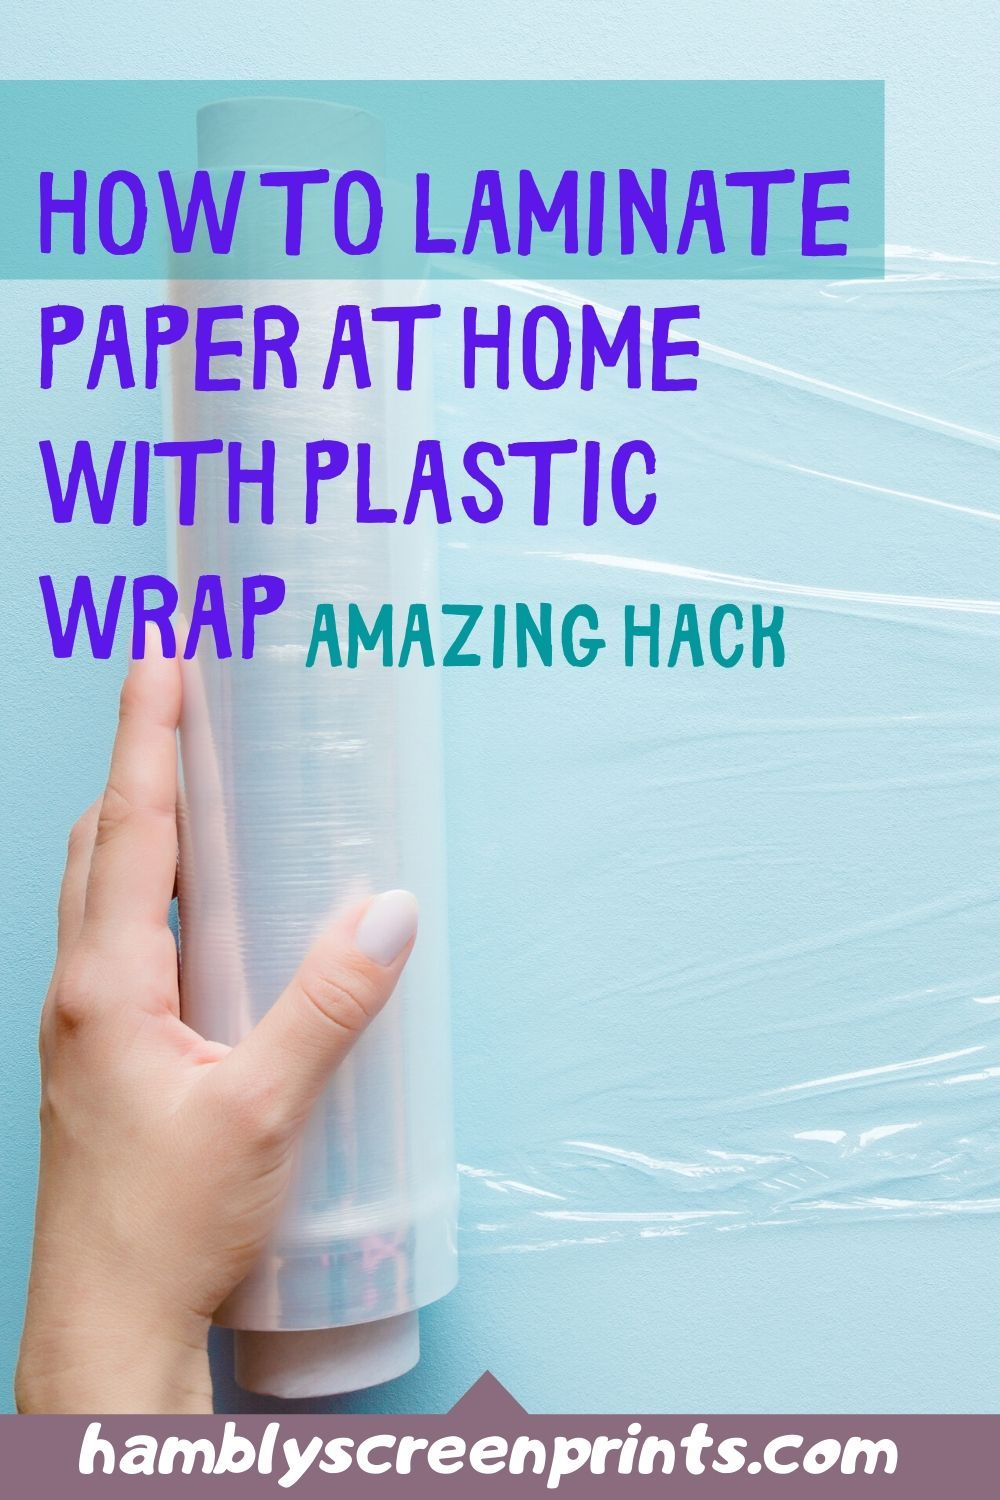 How To Laminate Paper At Home With Plastic Wrap Diy Without Machine In 2020 Laminating Paper Personalized T Shirts Clear Packing Tape